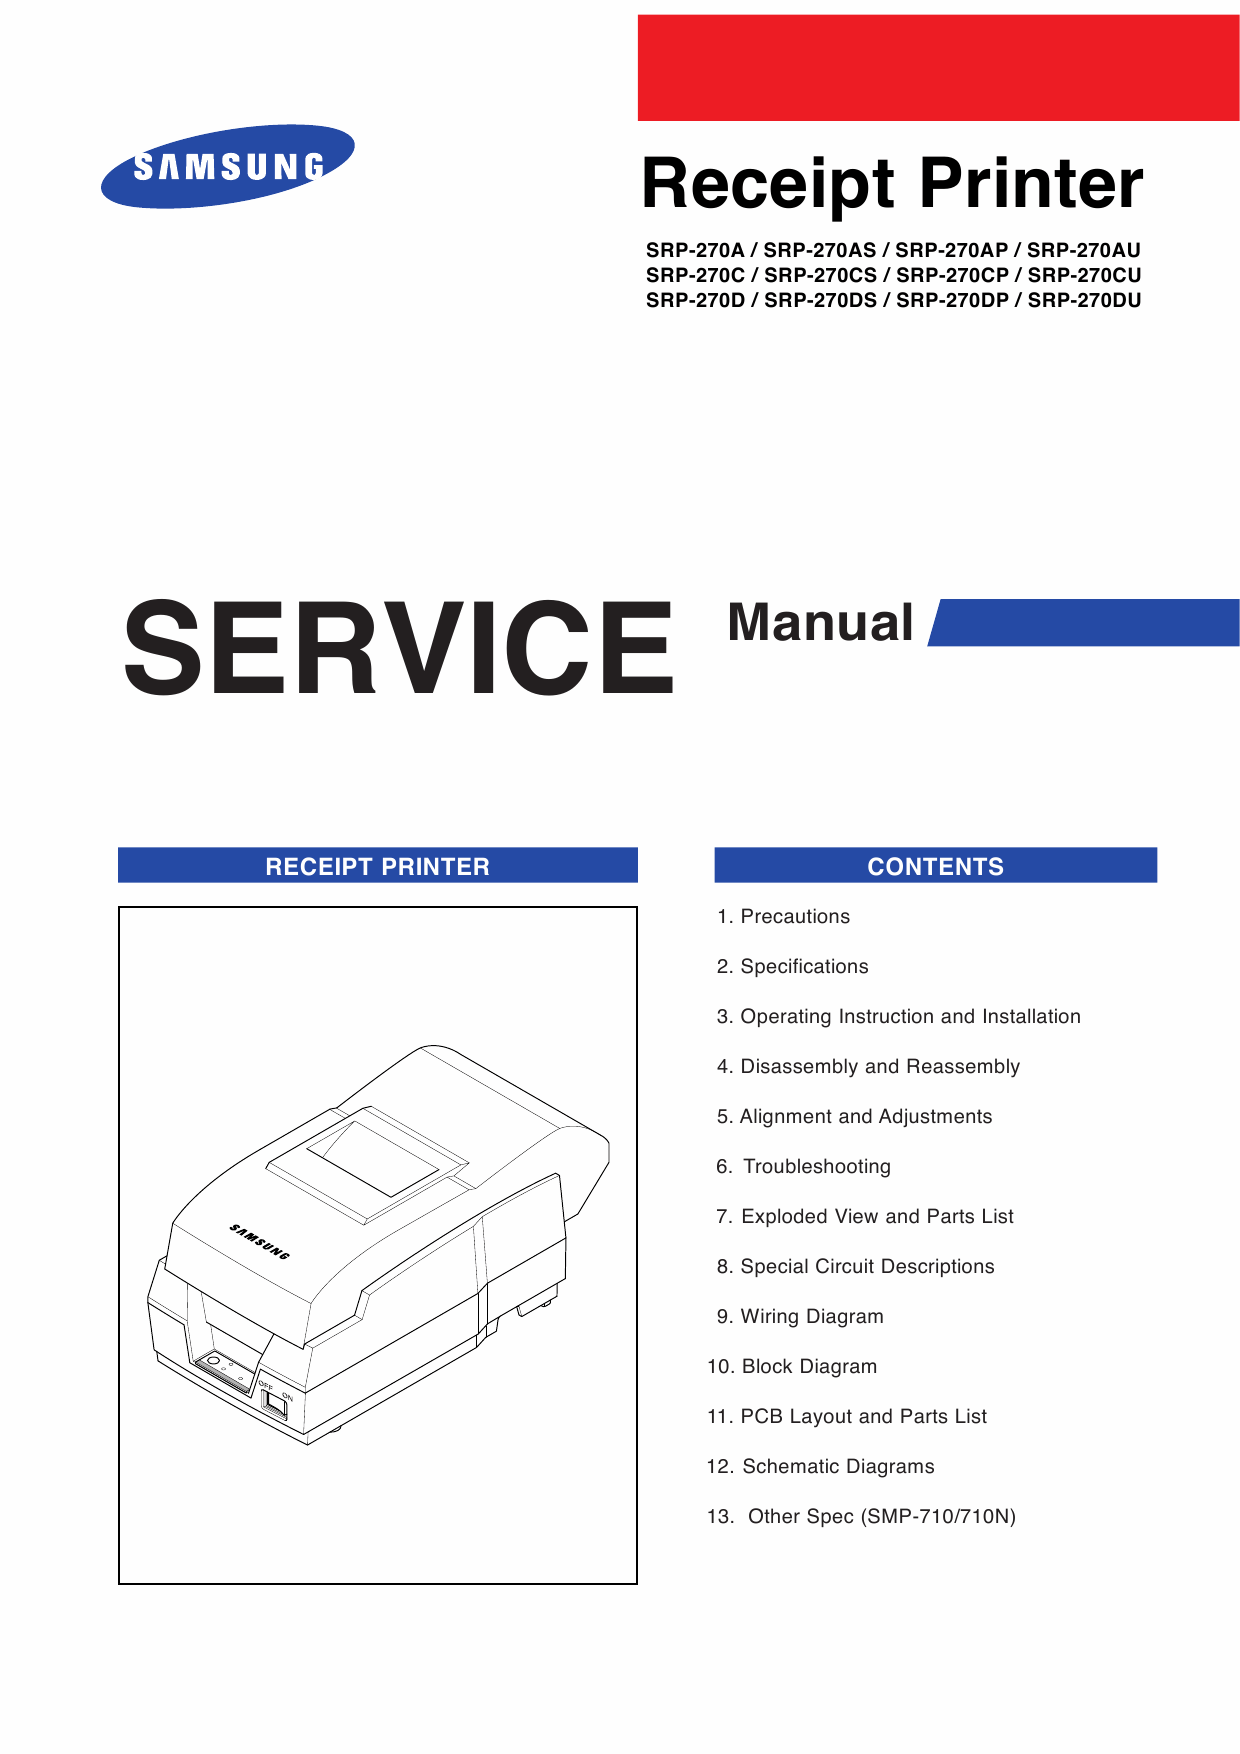 Samsung Receipt-Printer SRP-270 Parts and Service Manual-1